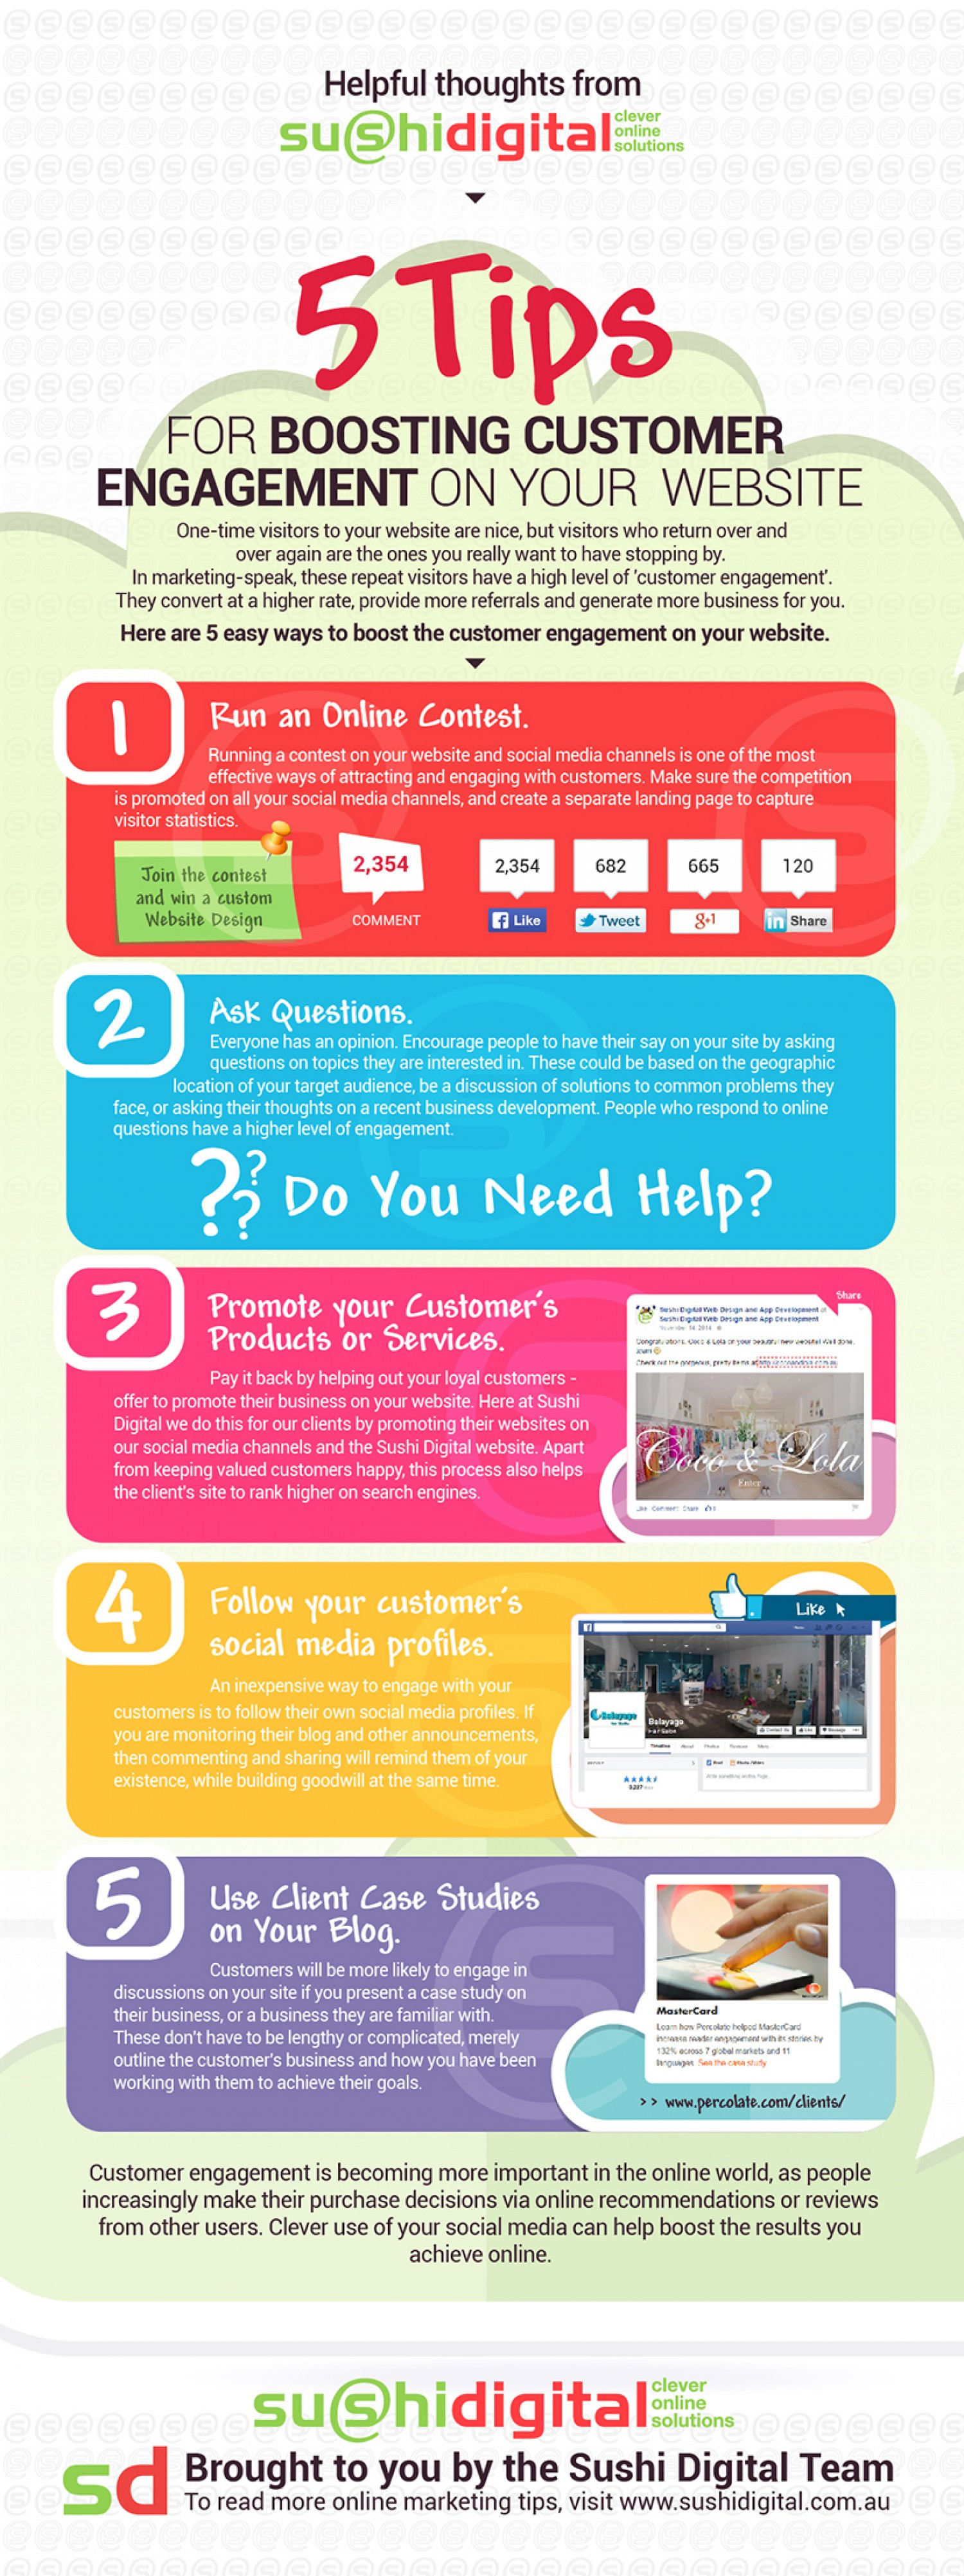 5-tips-for-boosting-customer-engagement-on-your-website_54ff3b3291a63_w1500